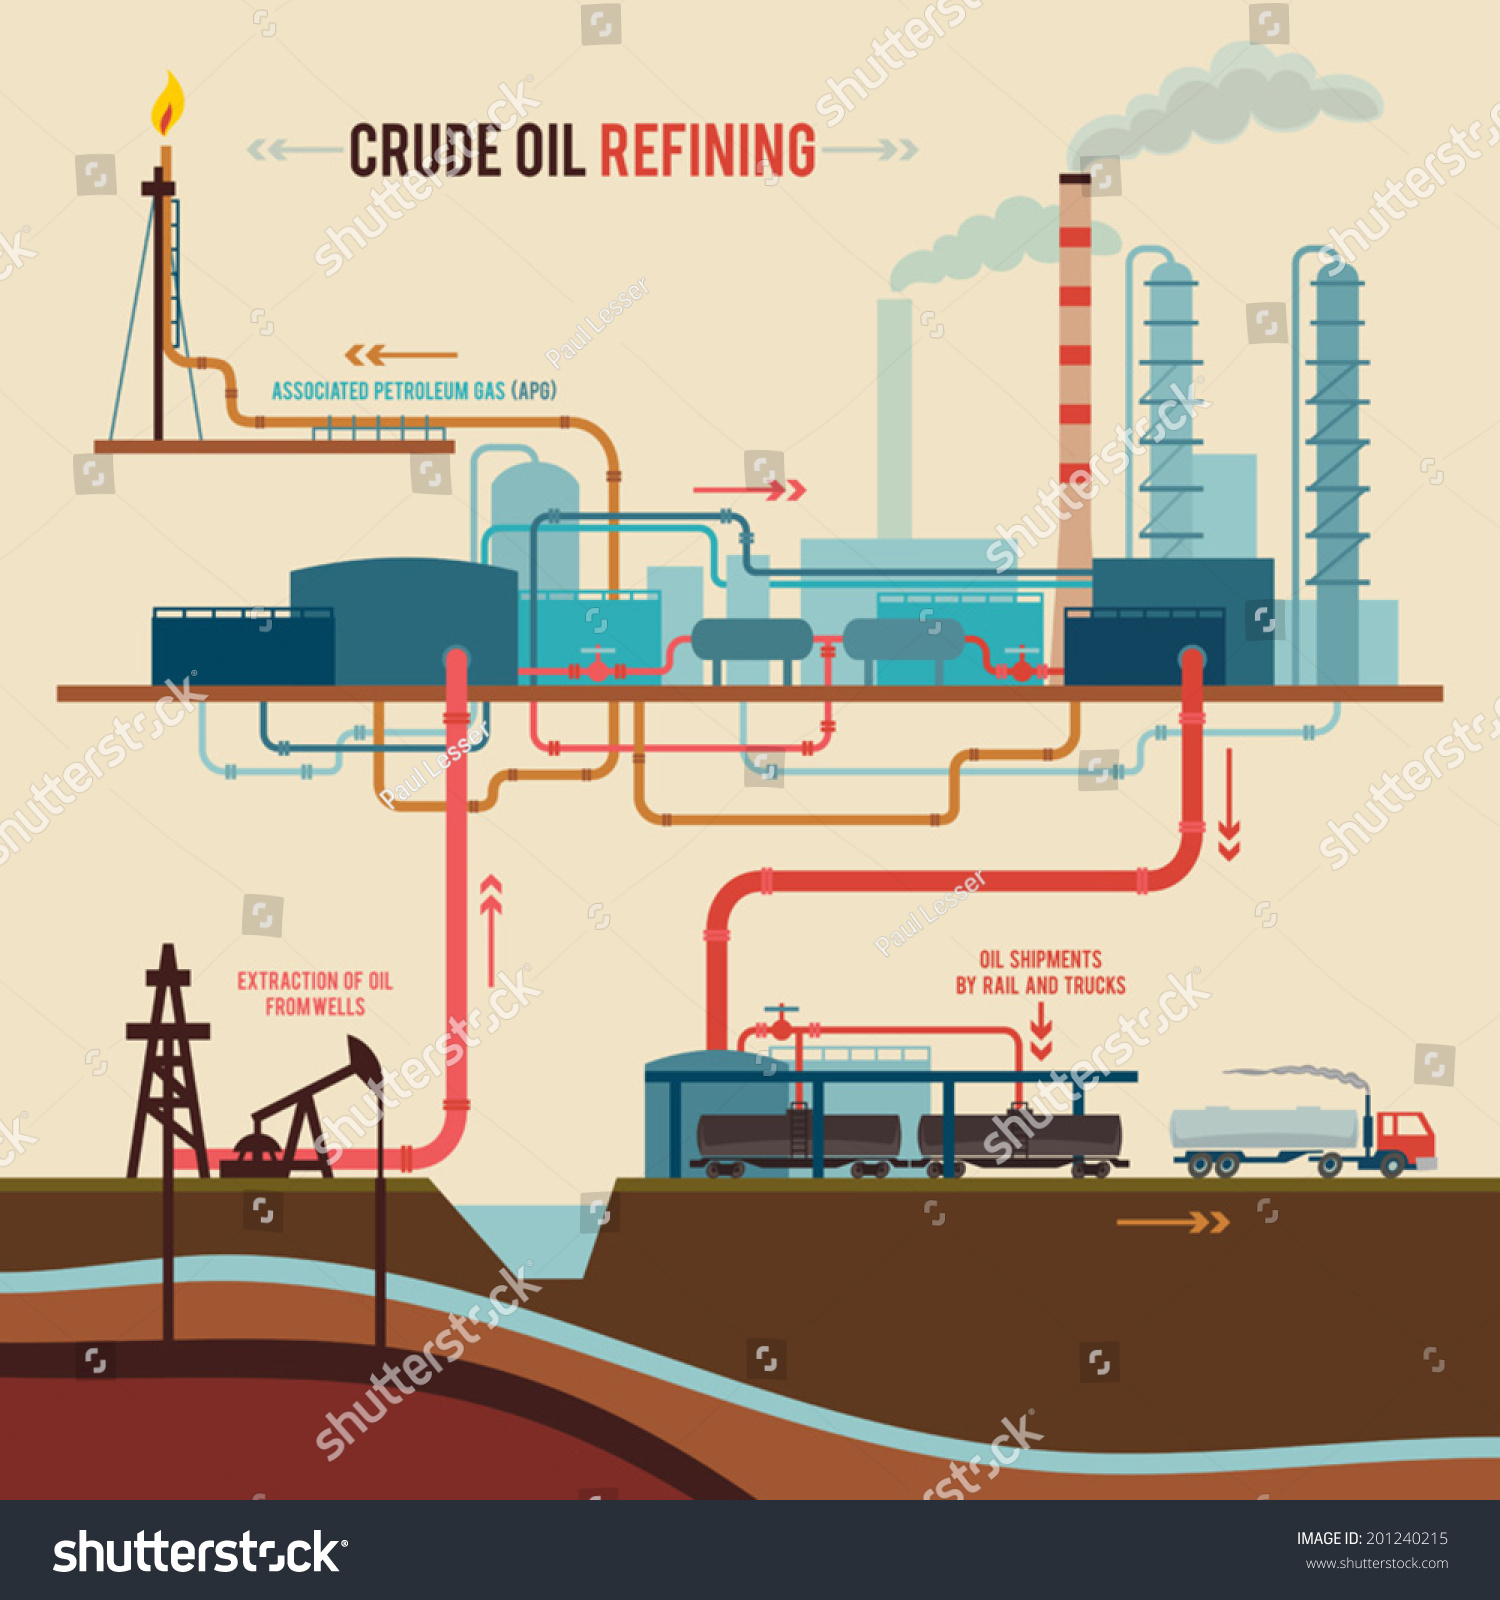 Stages of processing crude oil on refinery plant from extraction to ...